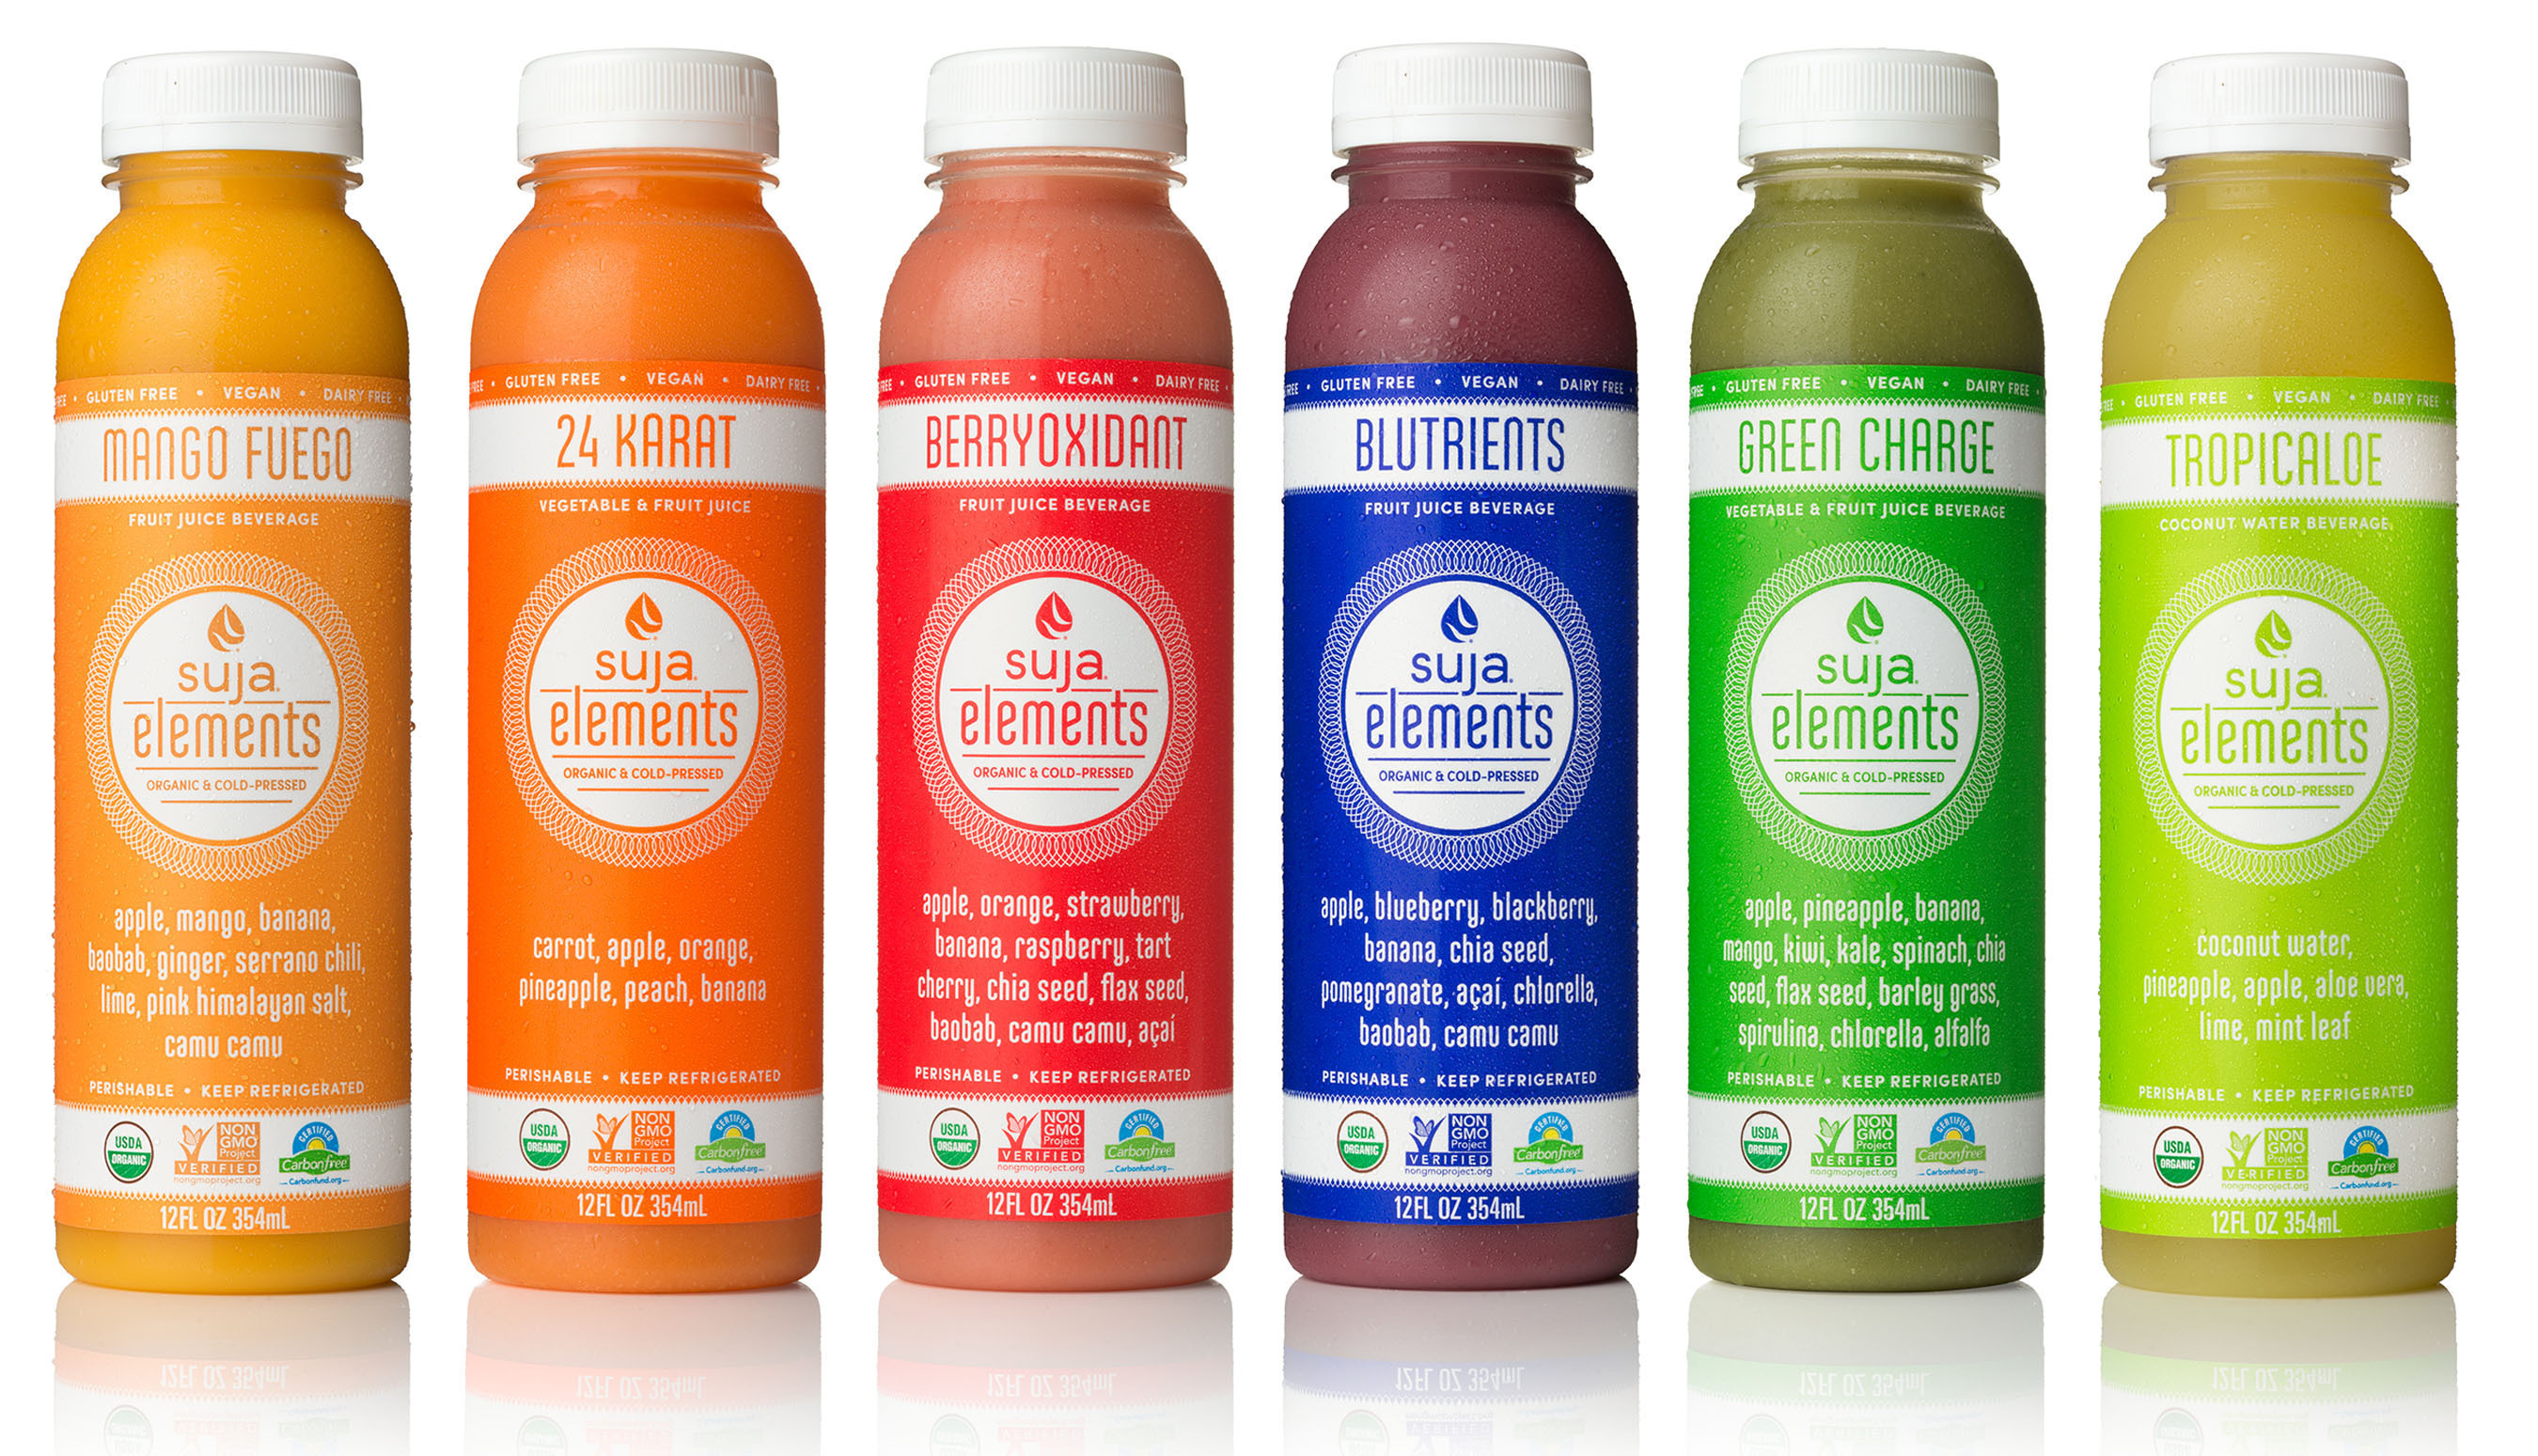 Odwalla Sued Over 'No Sugar Added' Label On 100% Juices